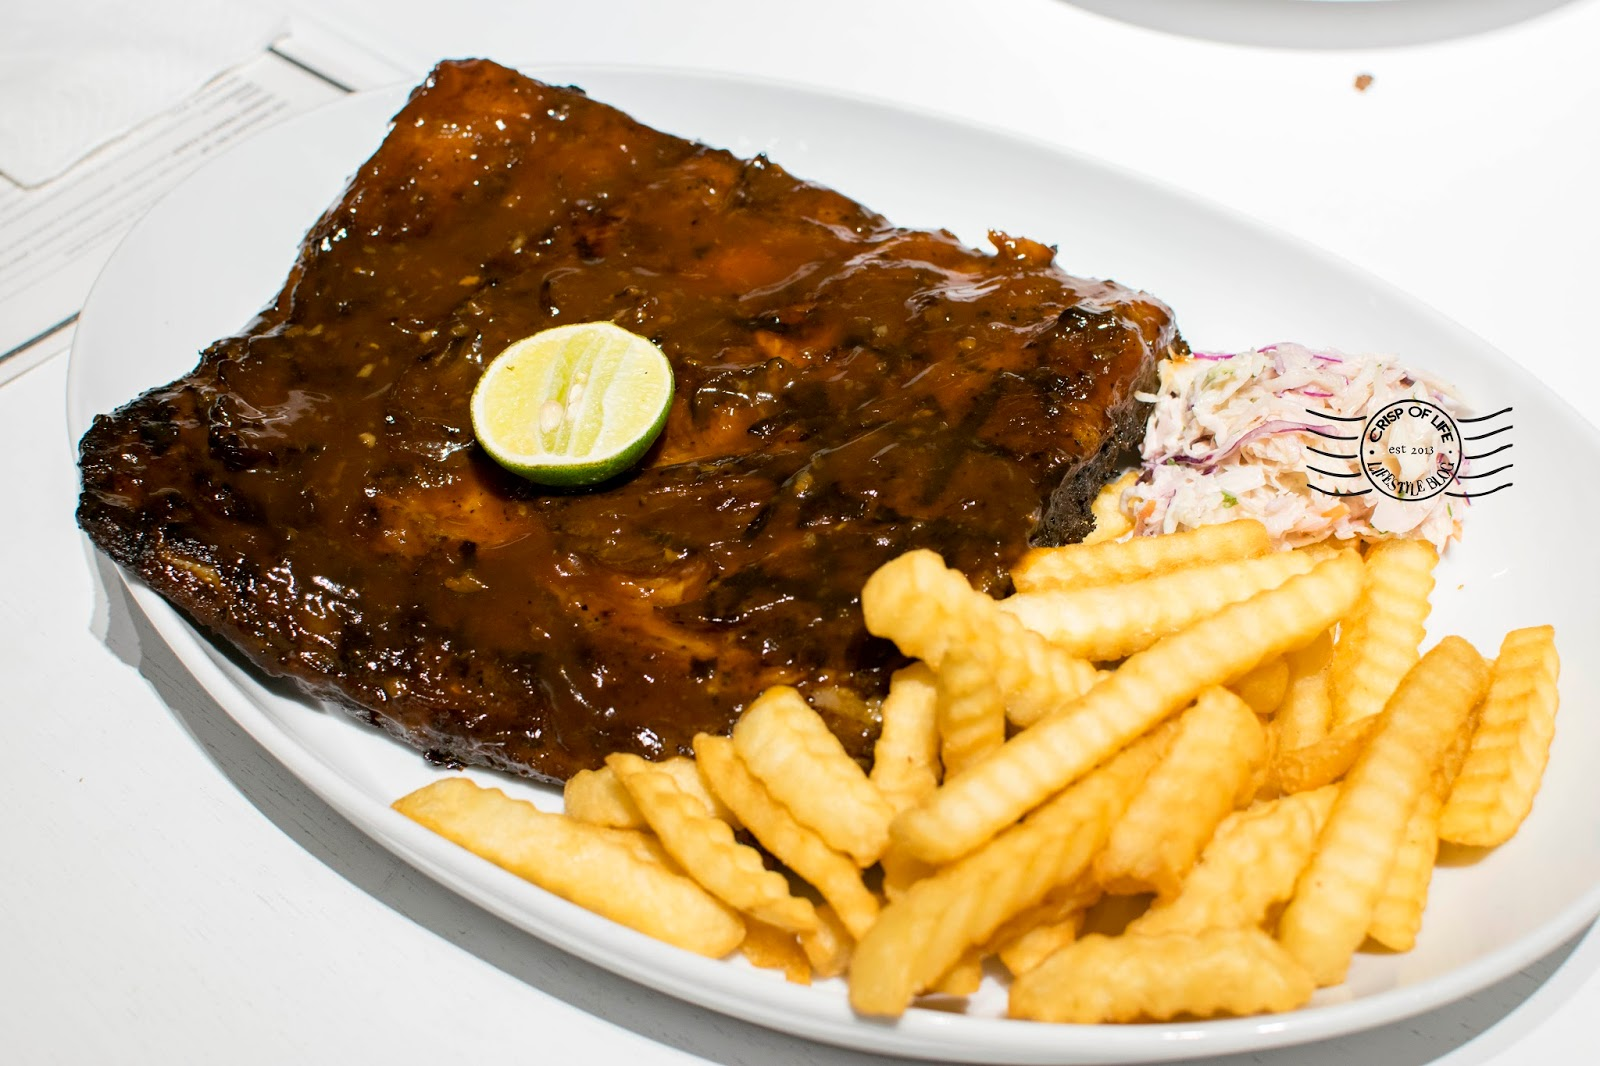 Pork restaurant in Penang Queensbay